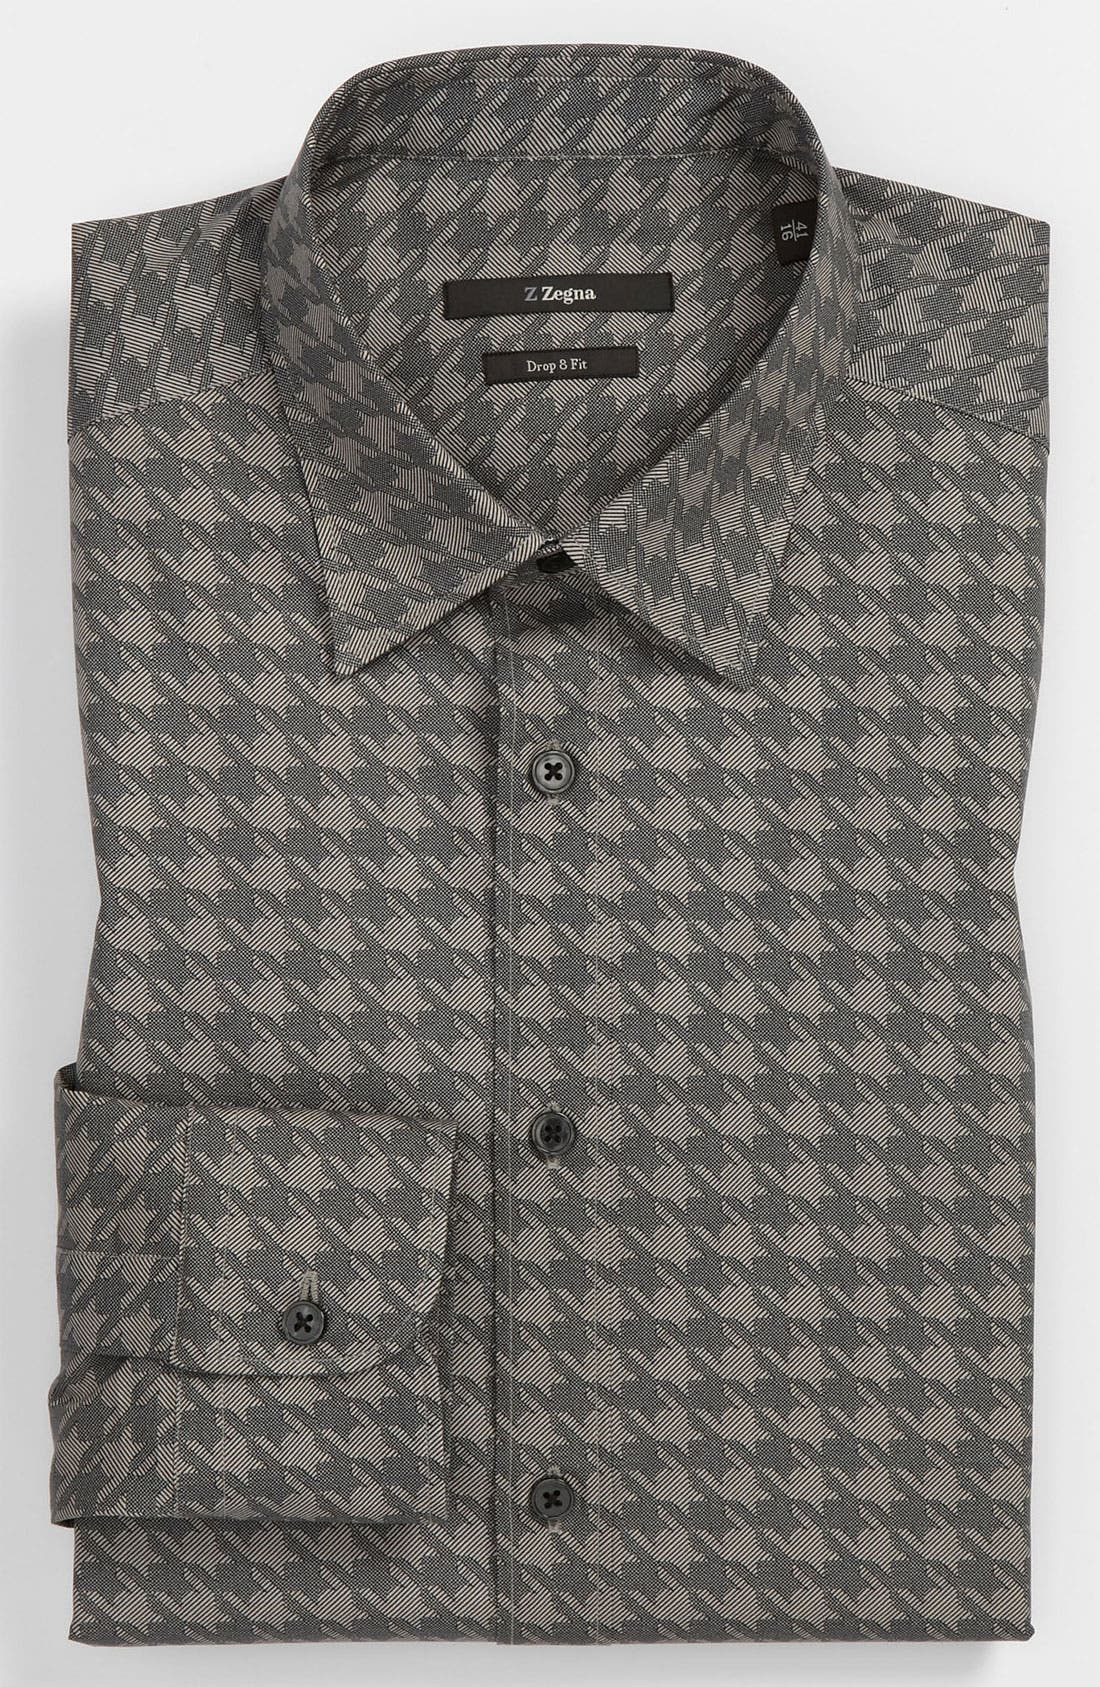 Alternate Image 1 Selected - Z Zegna Drop 8 Fit Dress Shirt